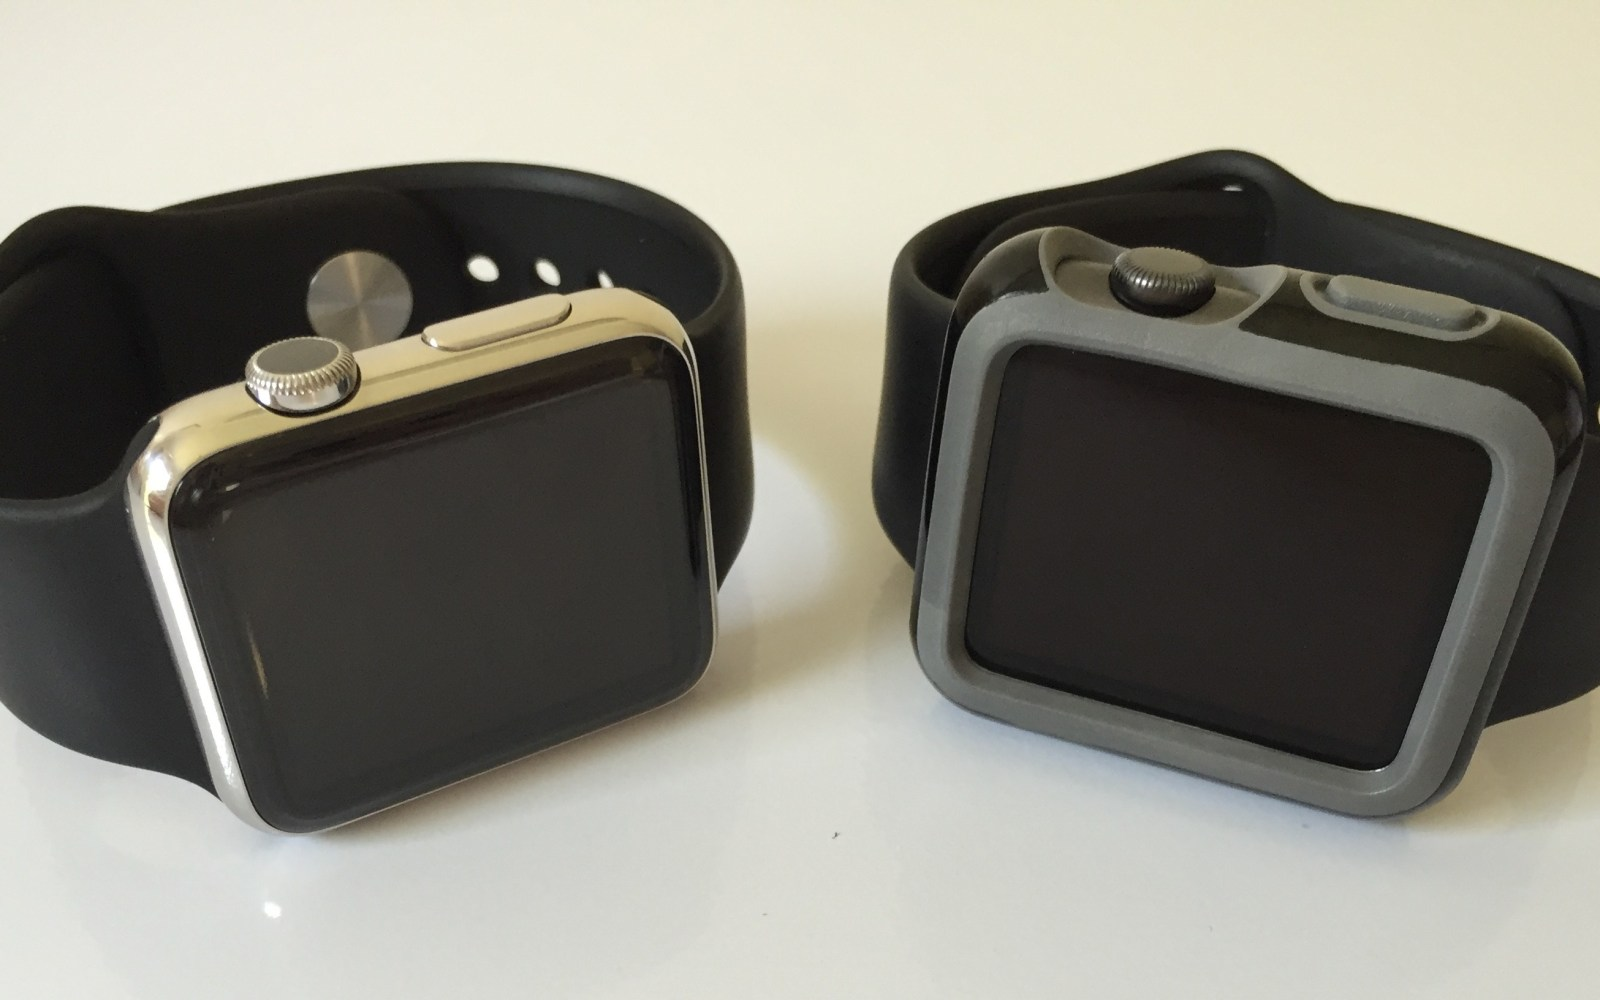 Review: Speck's CandyShell Fit Apple Watch case protects when you need it, then removes easily